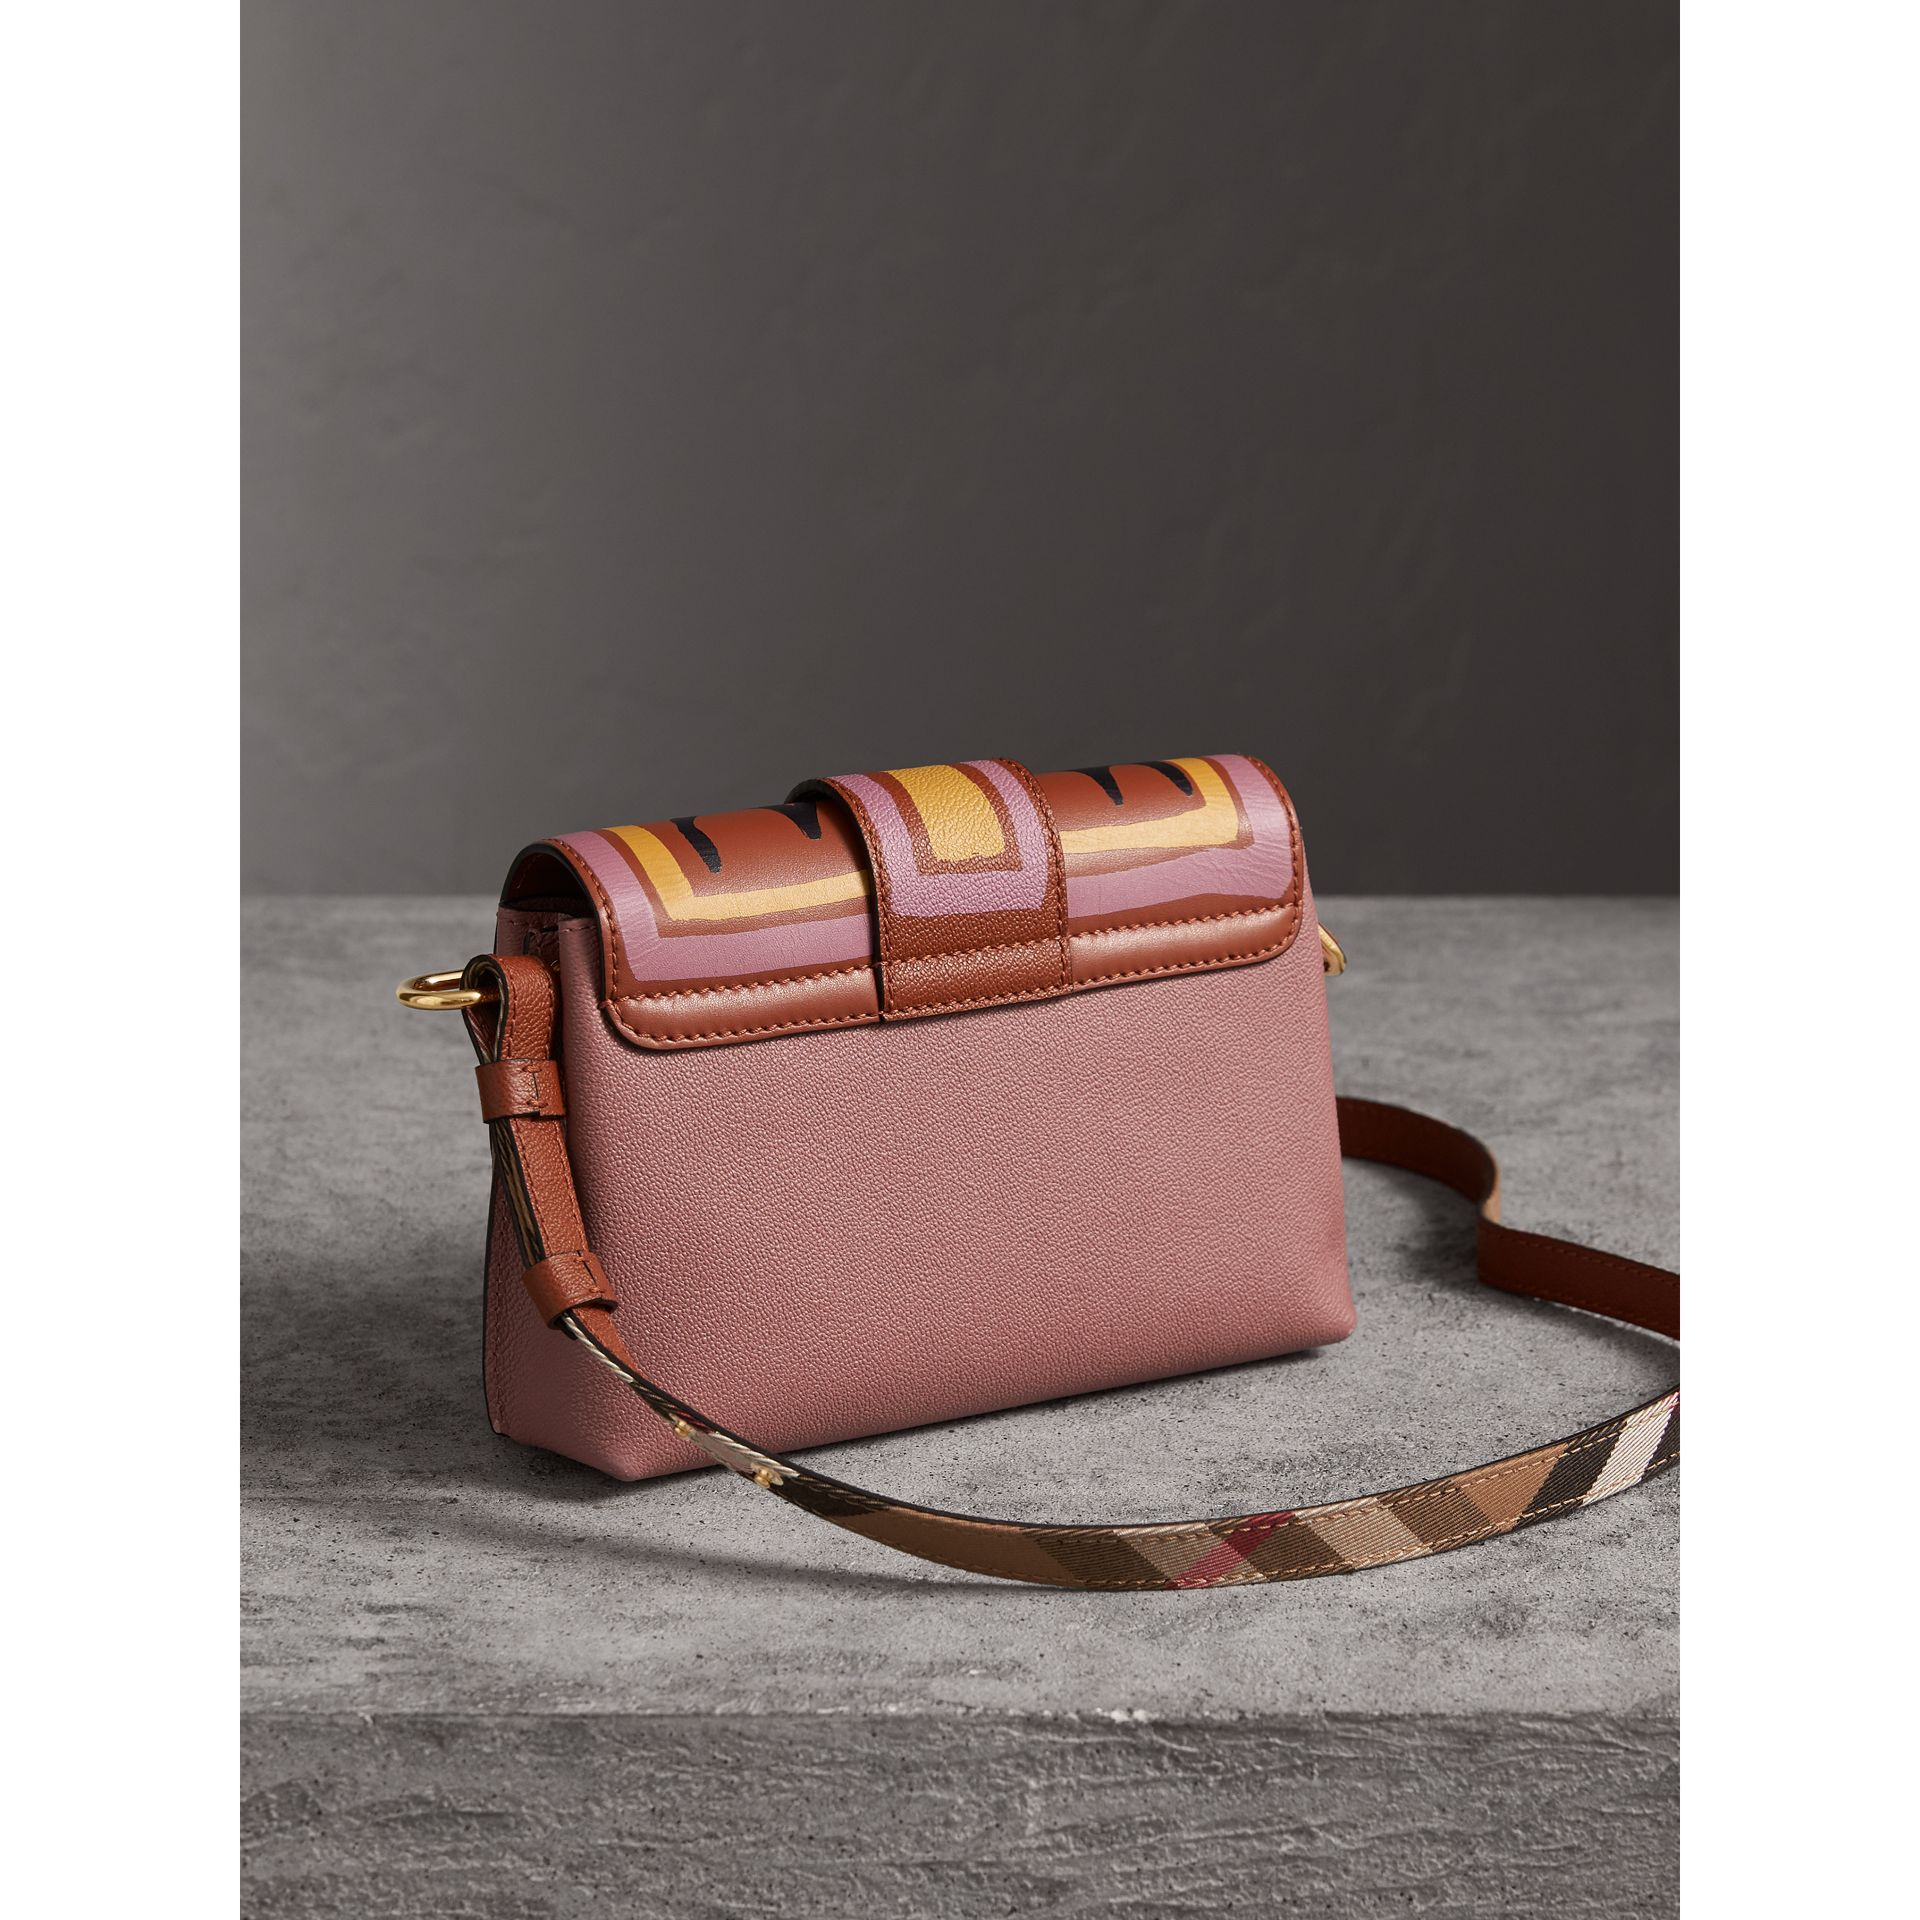 The Buckle Crossbody Bag in Trompe L'oeil Leather in Dusty Pink/bright Toffee - Women | Burberry - gallery image 4